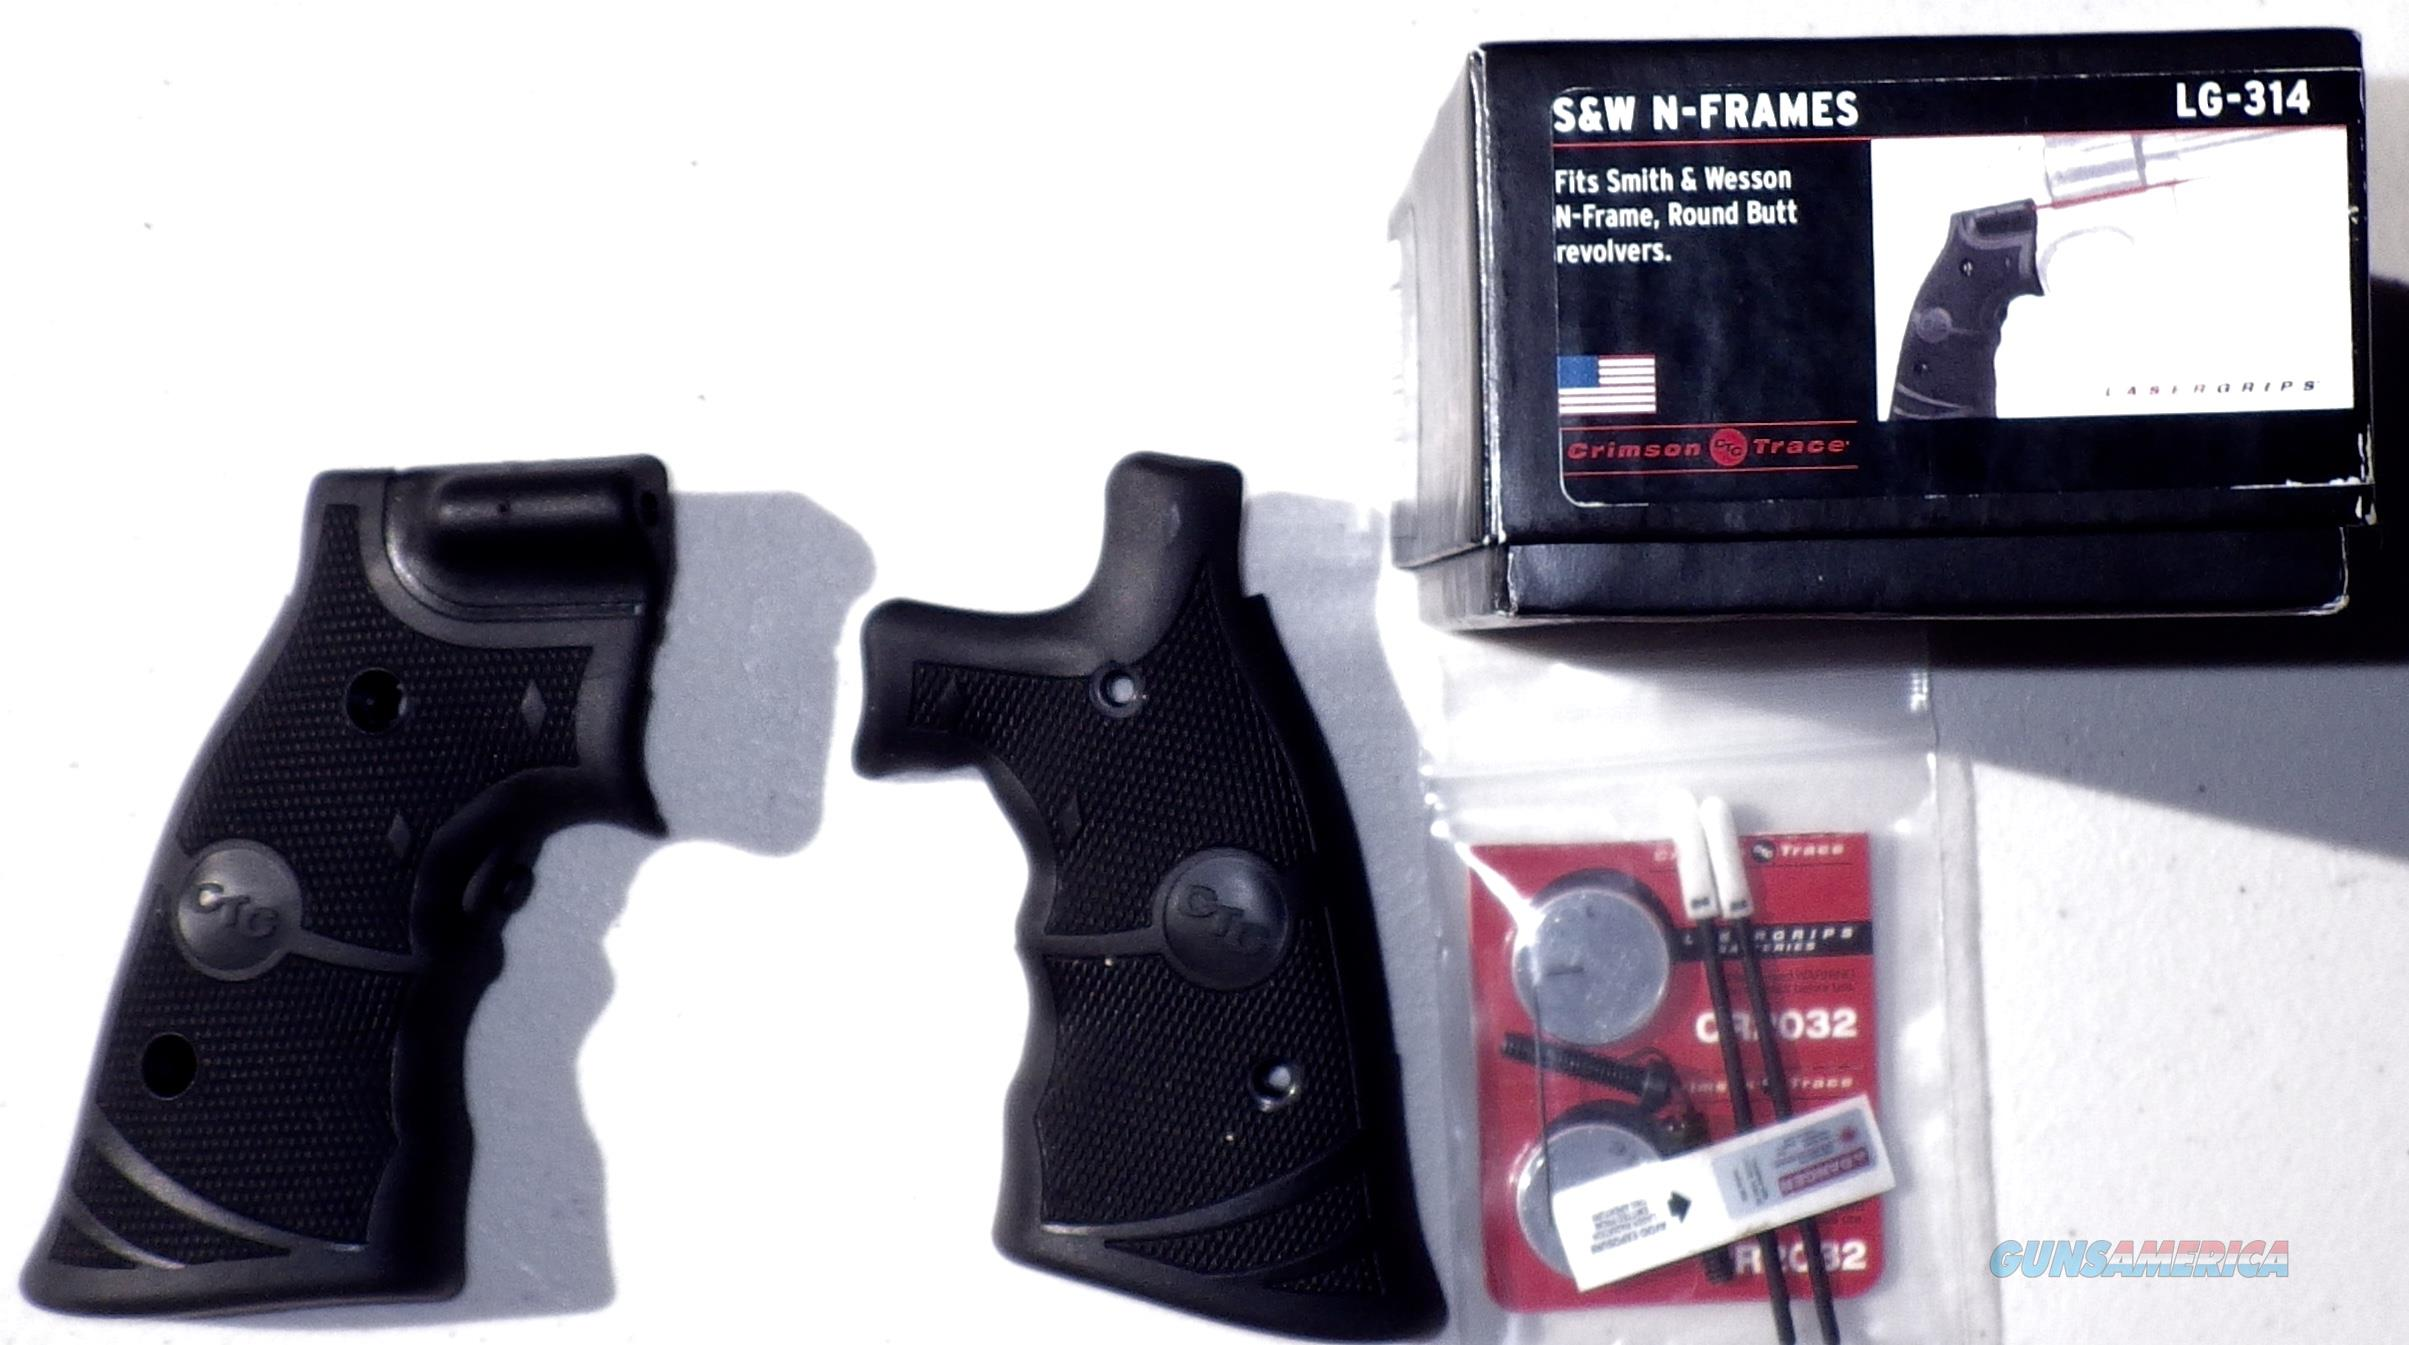 Crimson Trace Lasergrips for Smith & Wesson N-frame round butt, new in box  Non-Guns > Gunstocks, Grips & Wood